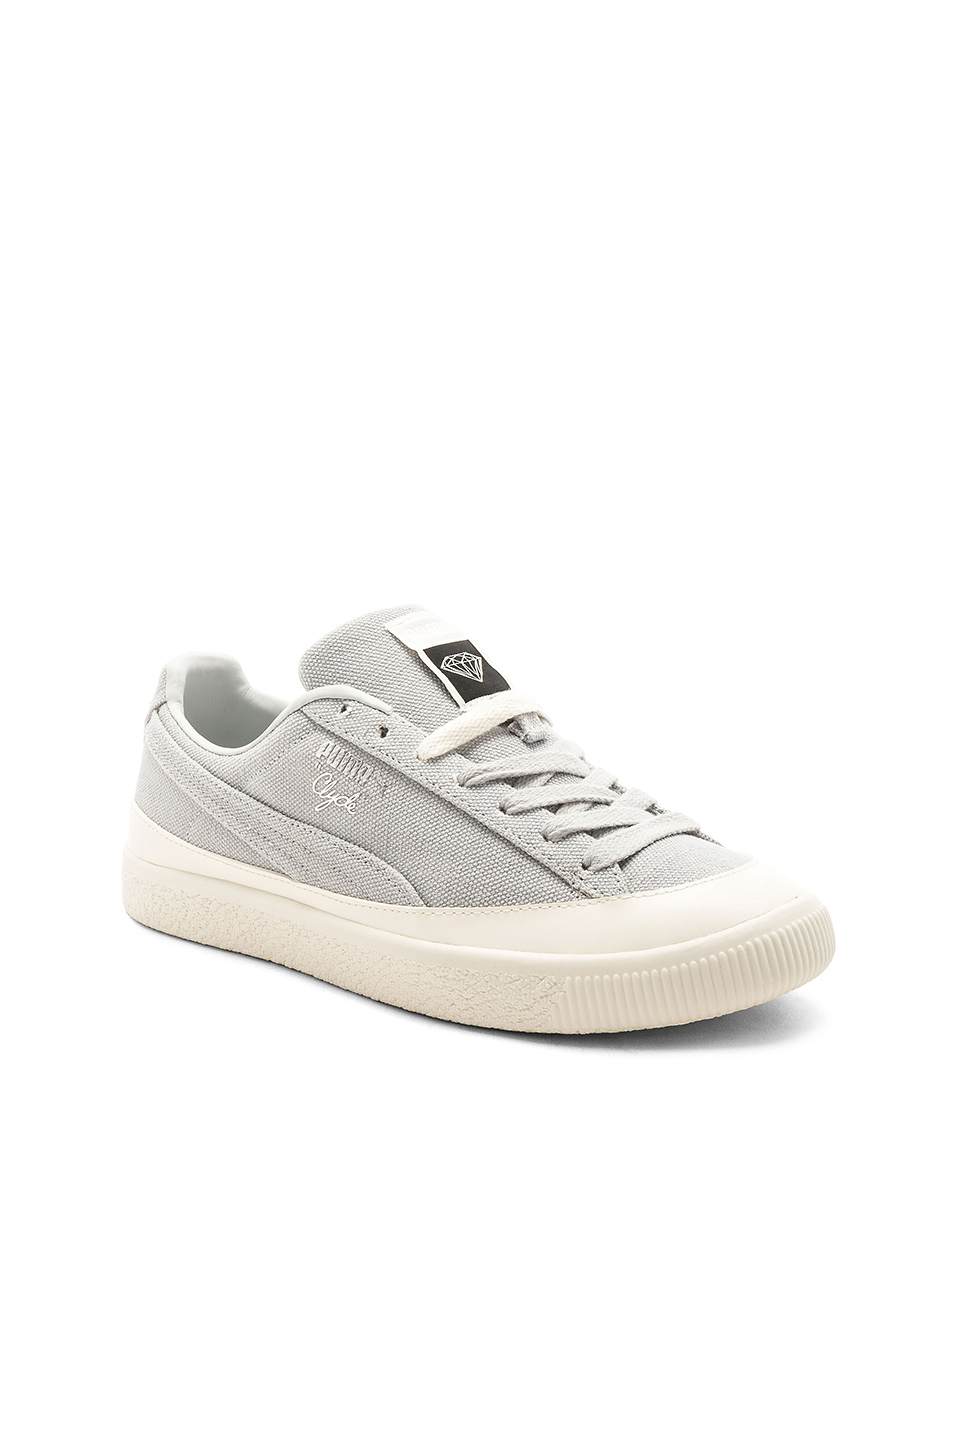 8e5dafd9769 Buy Original Puma Select x Diamond Supply Co Clyde at Indonesia ...